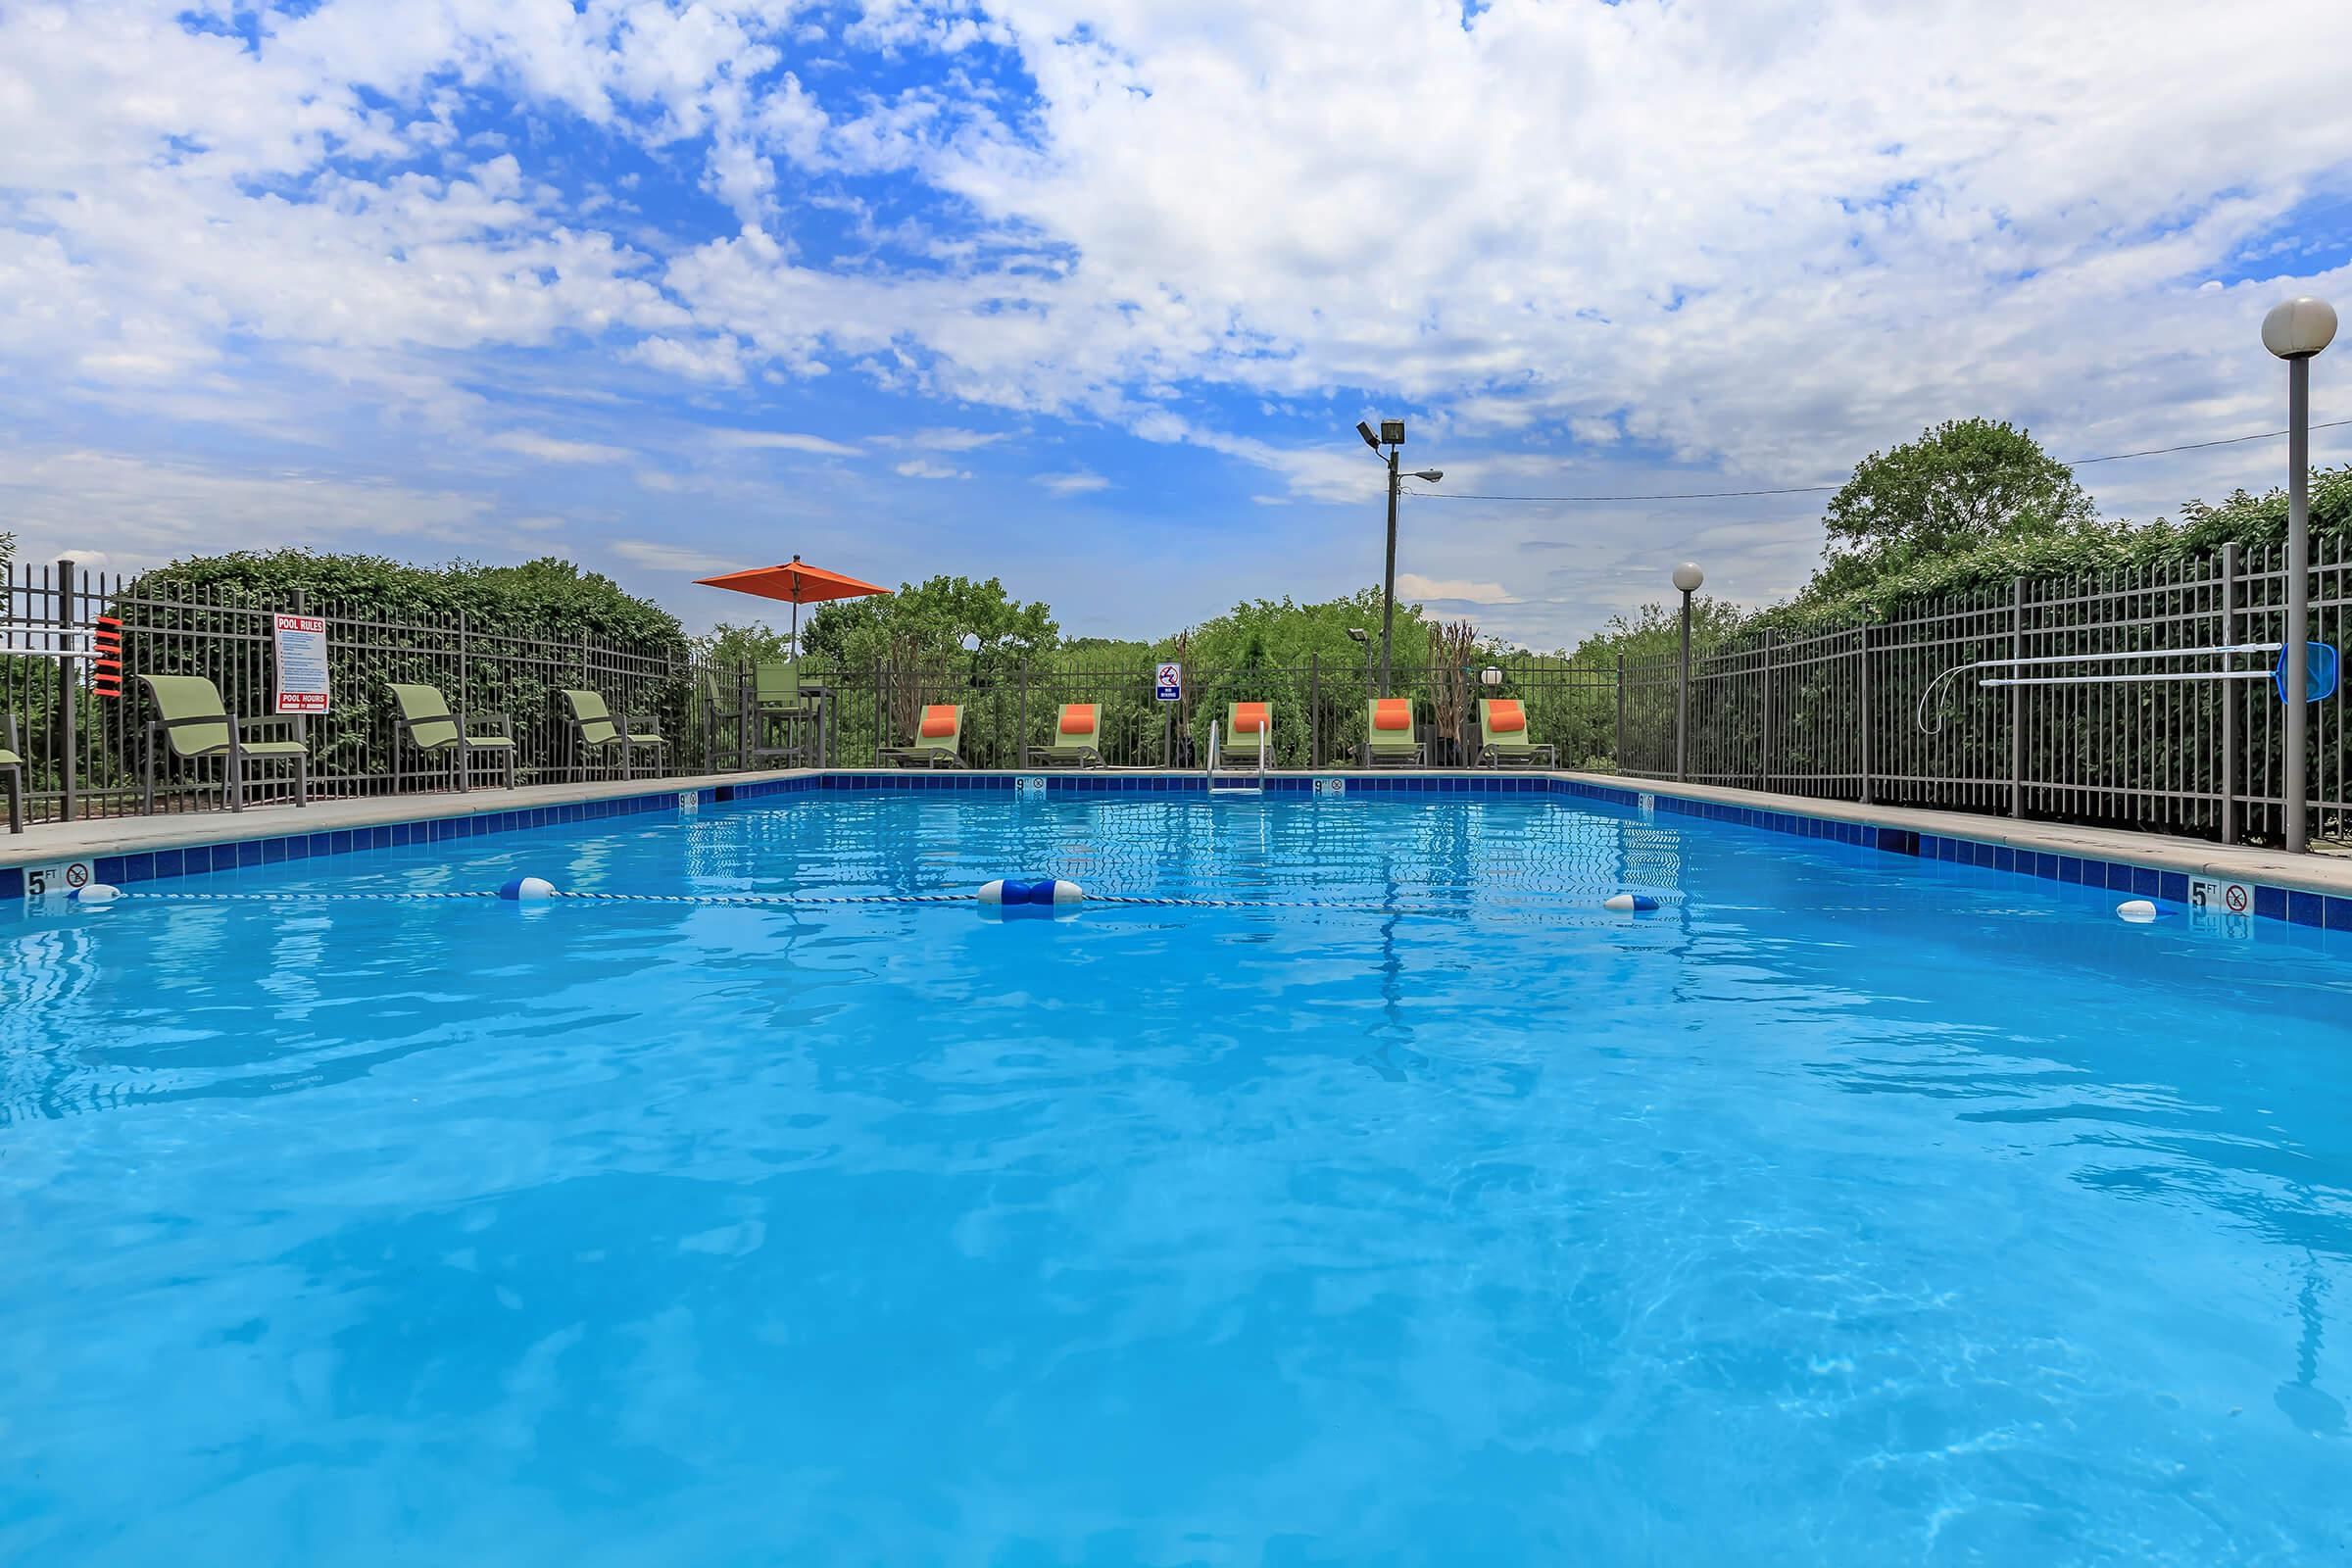 the swimming pool at Sunrise Apartments in Nashville, Tennessee has plenty of space for everyone